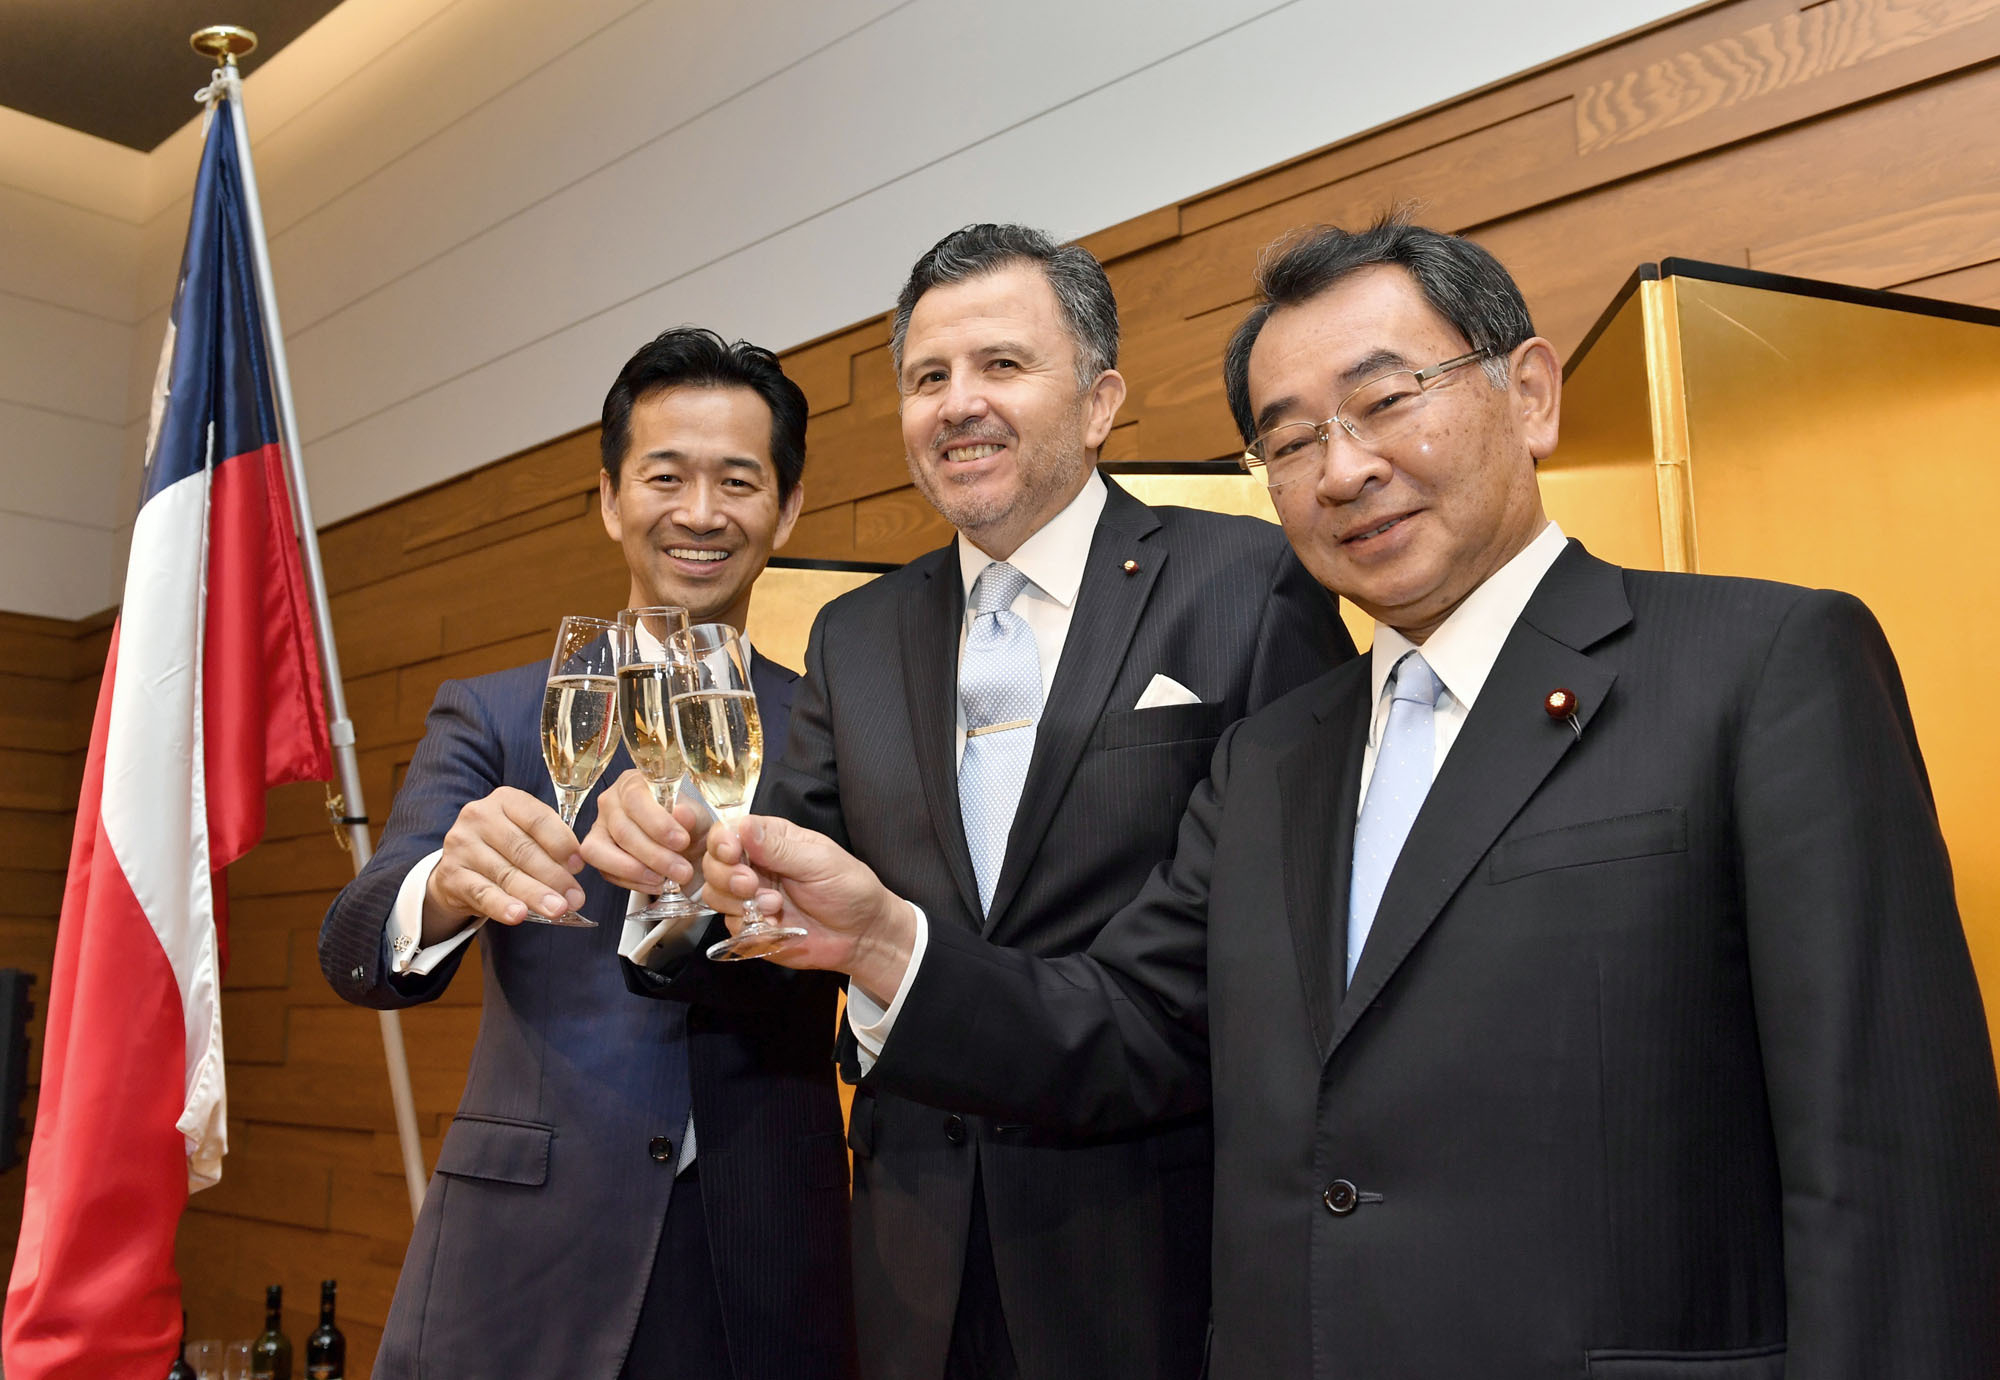 Chilean Ambassador Gustavo Ayares (center) joins Mitsunari Okamoto, parliamentary vice foreign minister (left), and Ryu Shionoya, president of the Japan-Chile Parliamentary Friendship League, during a reception to celebrate the 207th anniversary of Chile's independence at International House of Japan in Tokyo on Sept. 20. |  YOSHIAKI MIURA